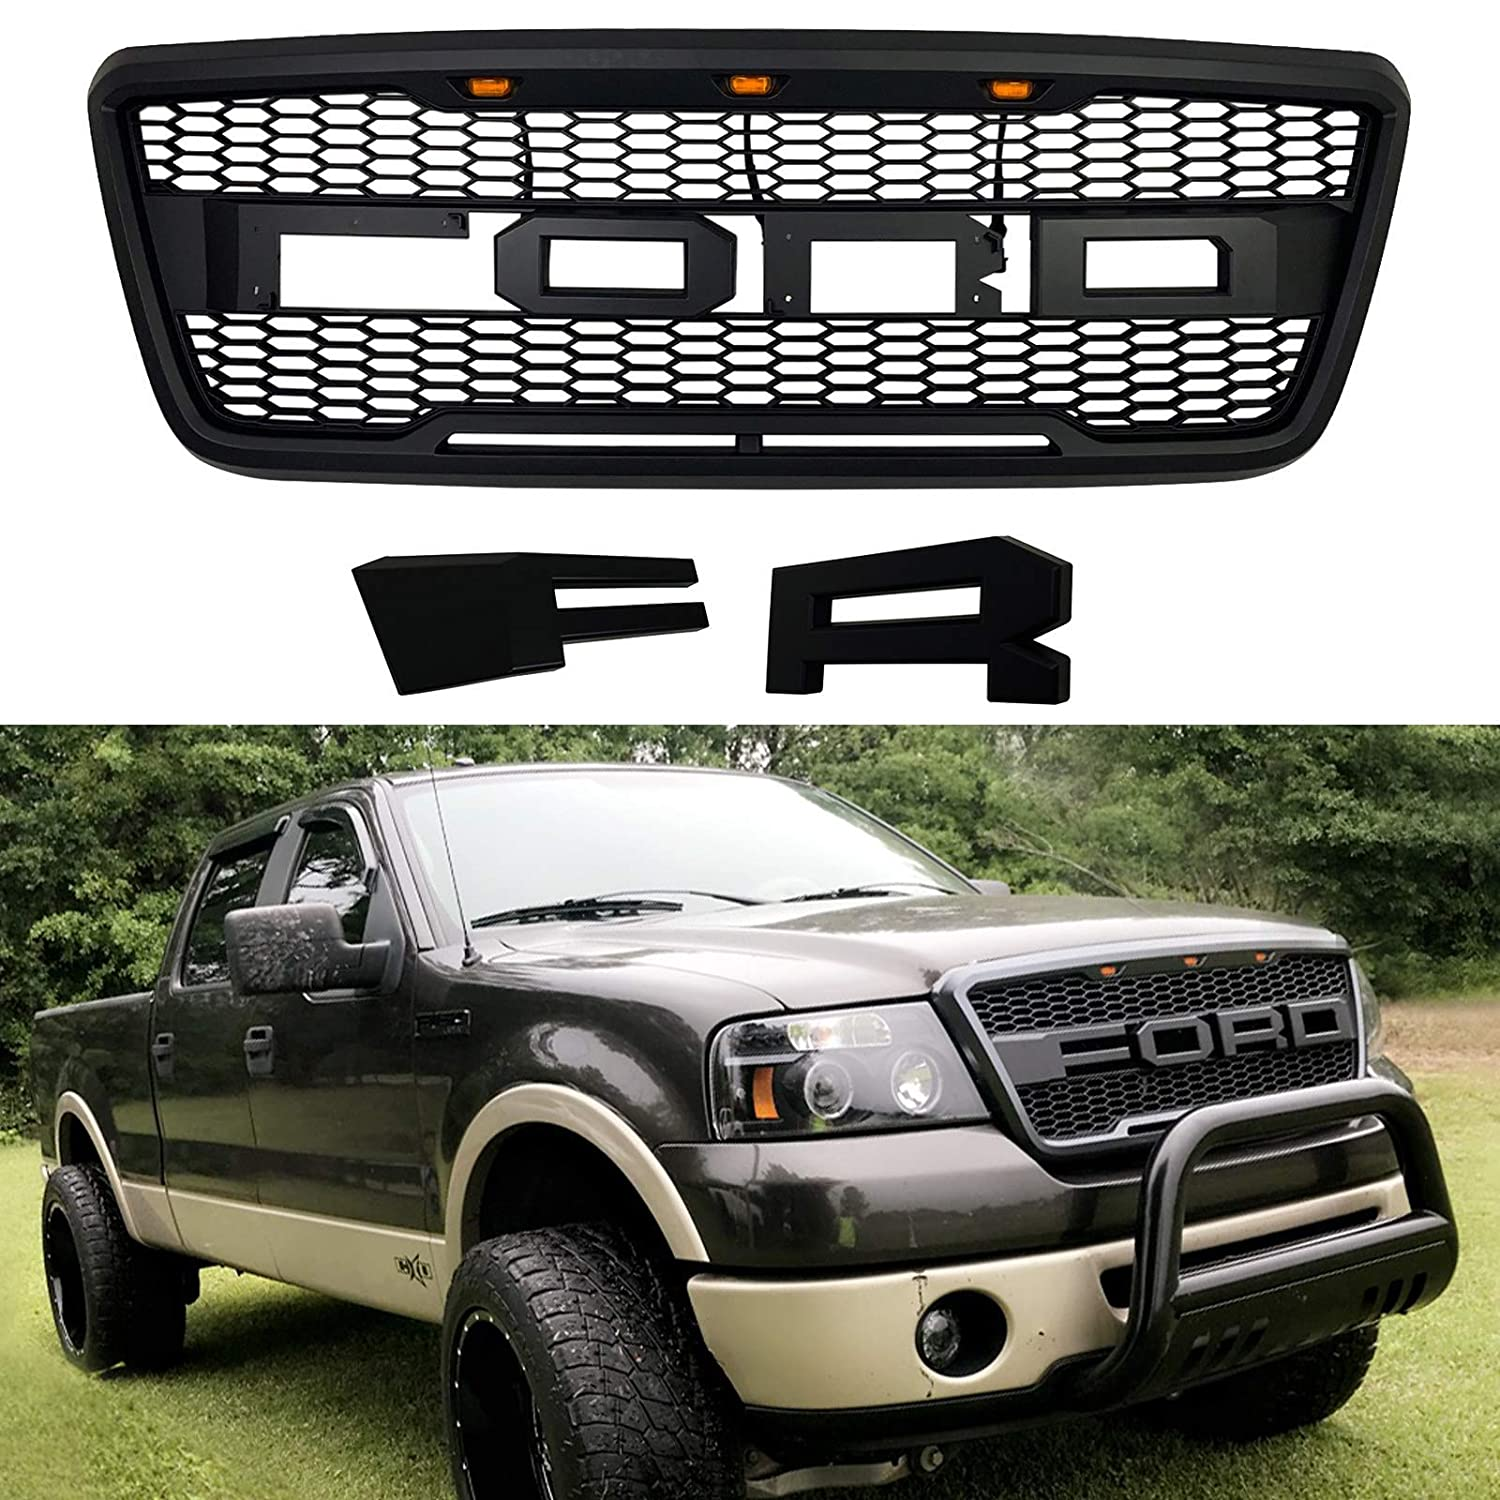 Front Grille Fits 2004 2008 Ford F150 Raptor Style Grill Kits With Amber Led Light And F R Letter Black